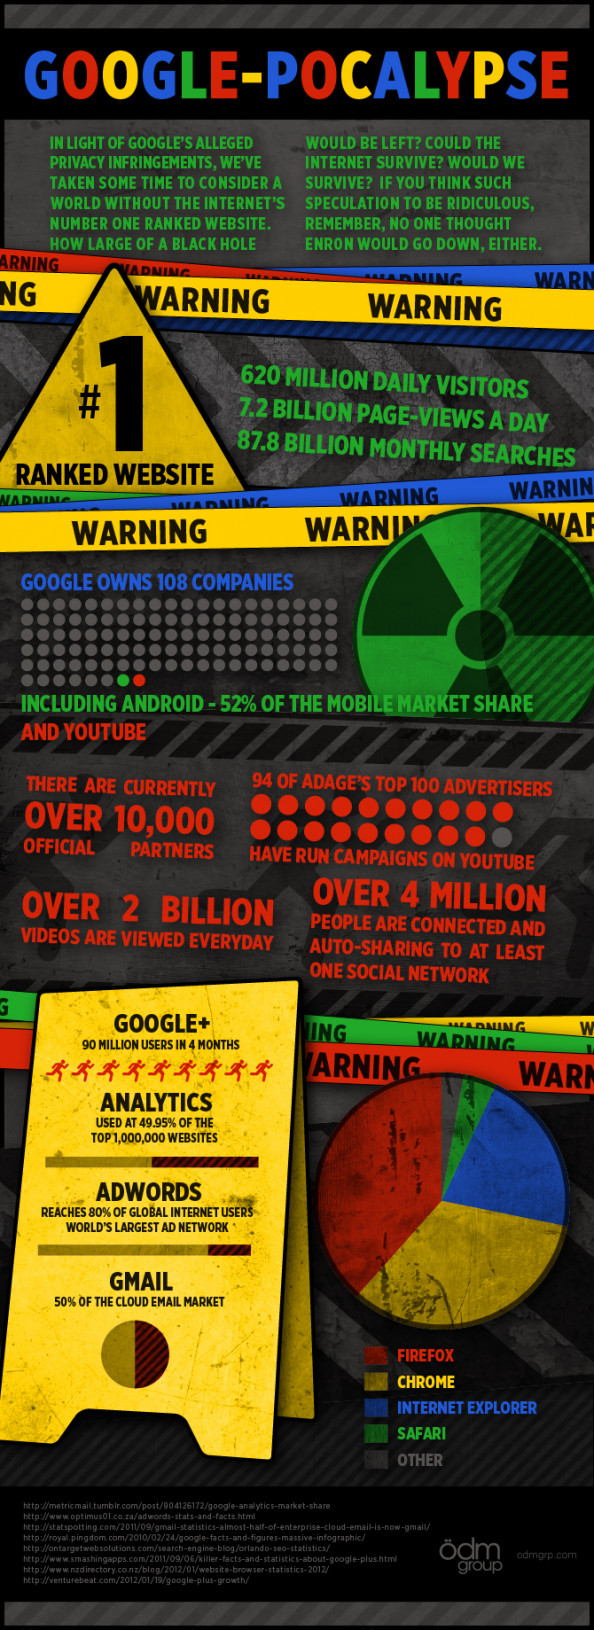 Google-pocalypse Infographic